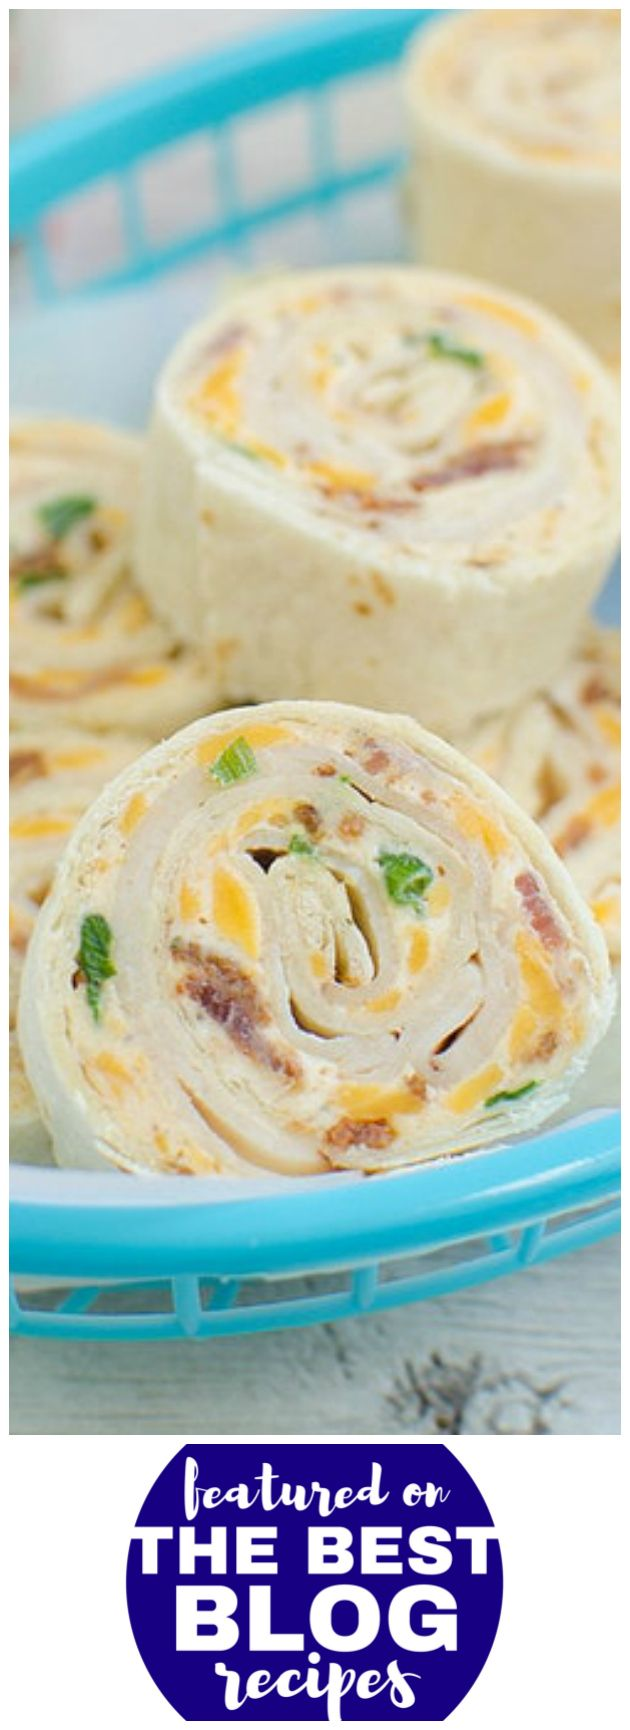 CHICKEN BACON RANCH PINWHEELS from Fake Ginger are #32 on our list of the BEST CHICKEN BACON RANCH DINNER RECIPES || Featured on The Best Blog Recipes with the original bloggers permission #dinner #pinwheels #cheese #appetizers